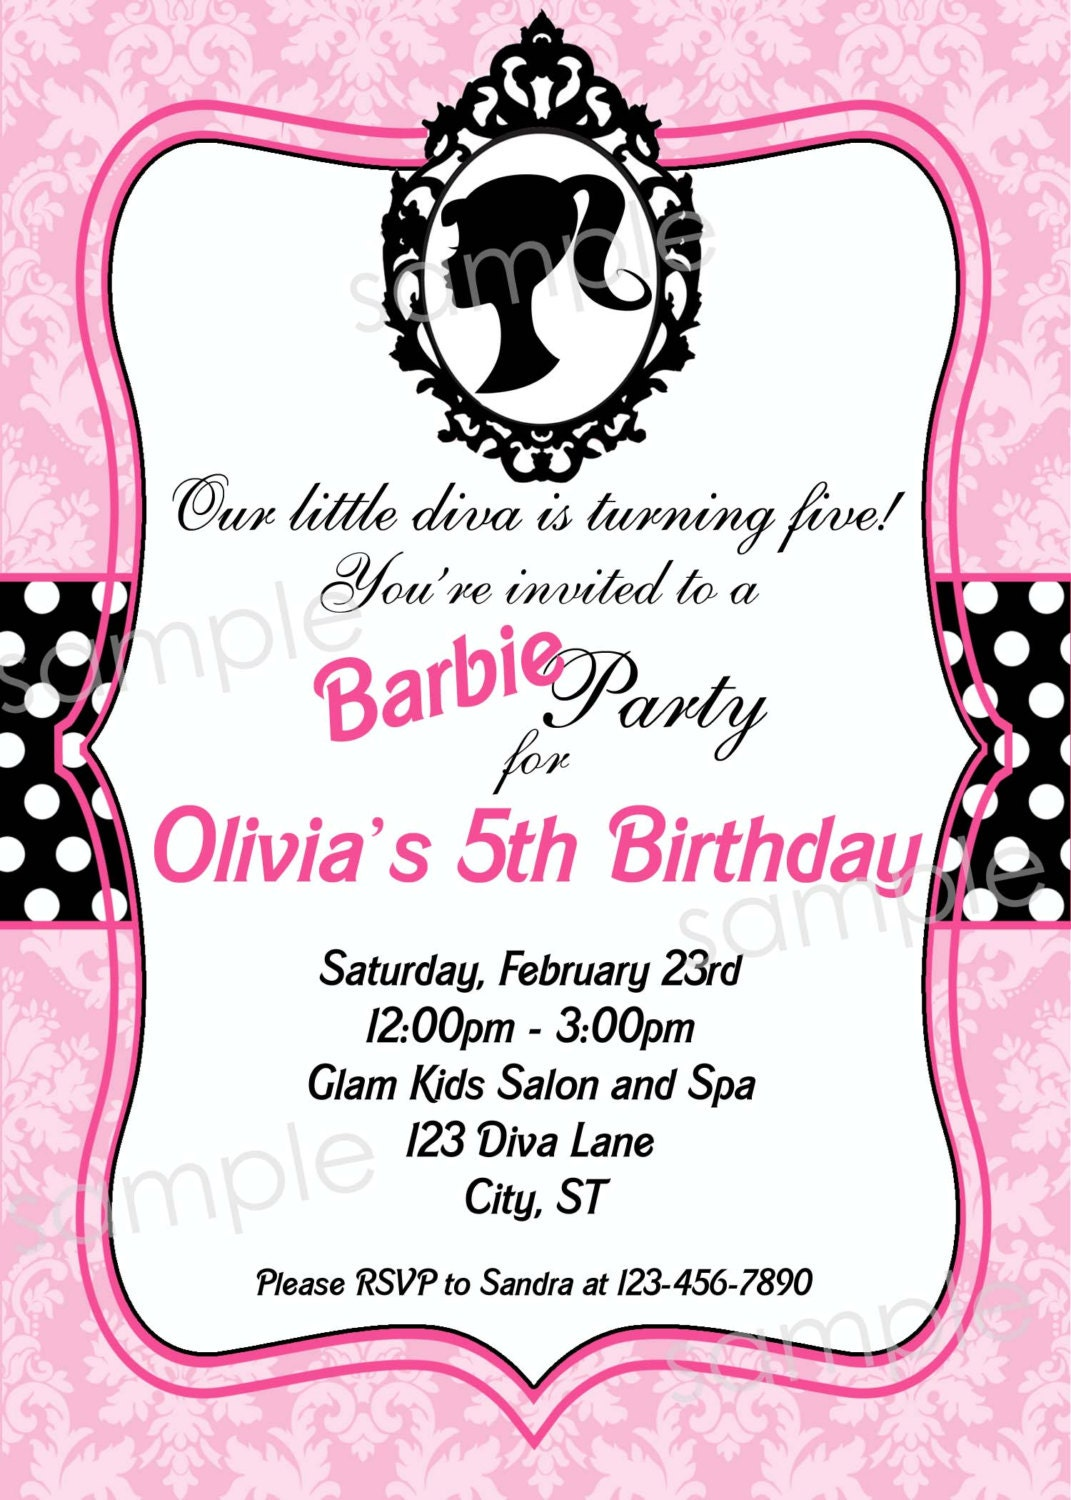 Create Online Birthday Invitations with nice invitation design